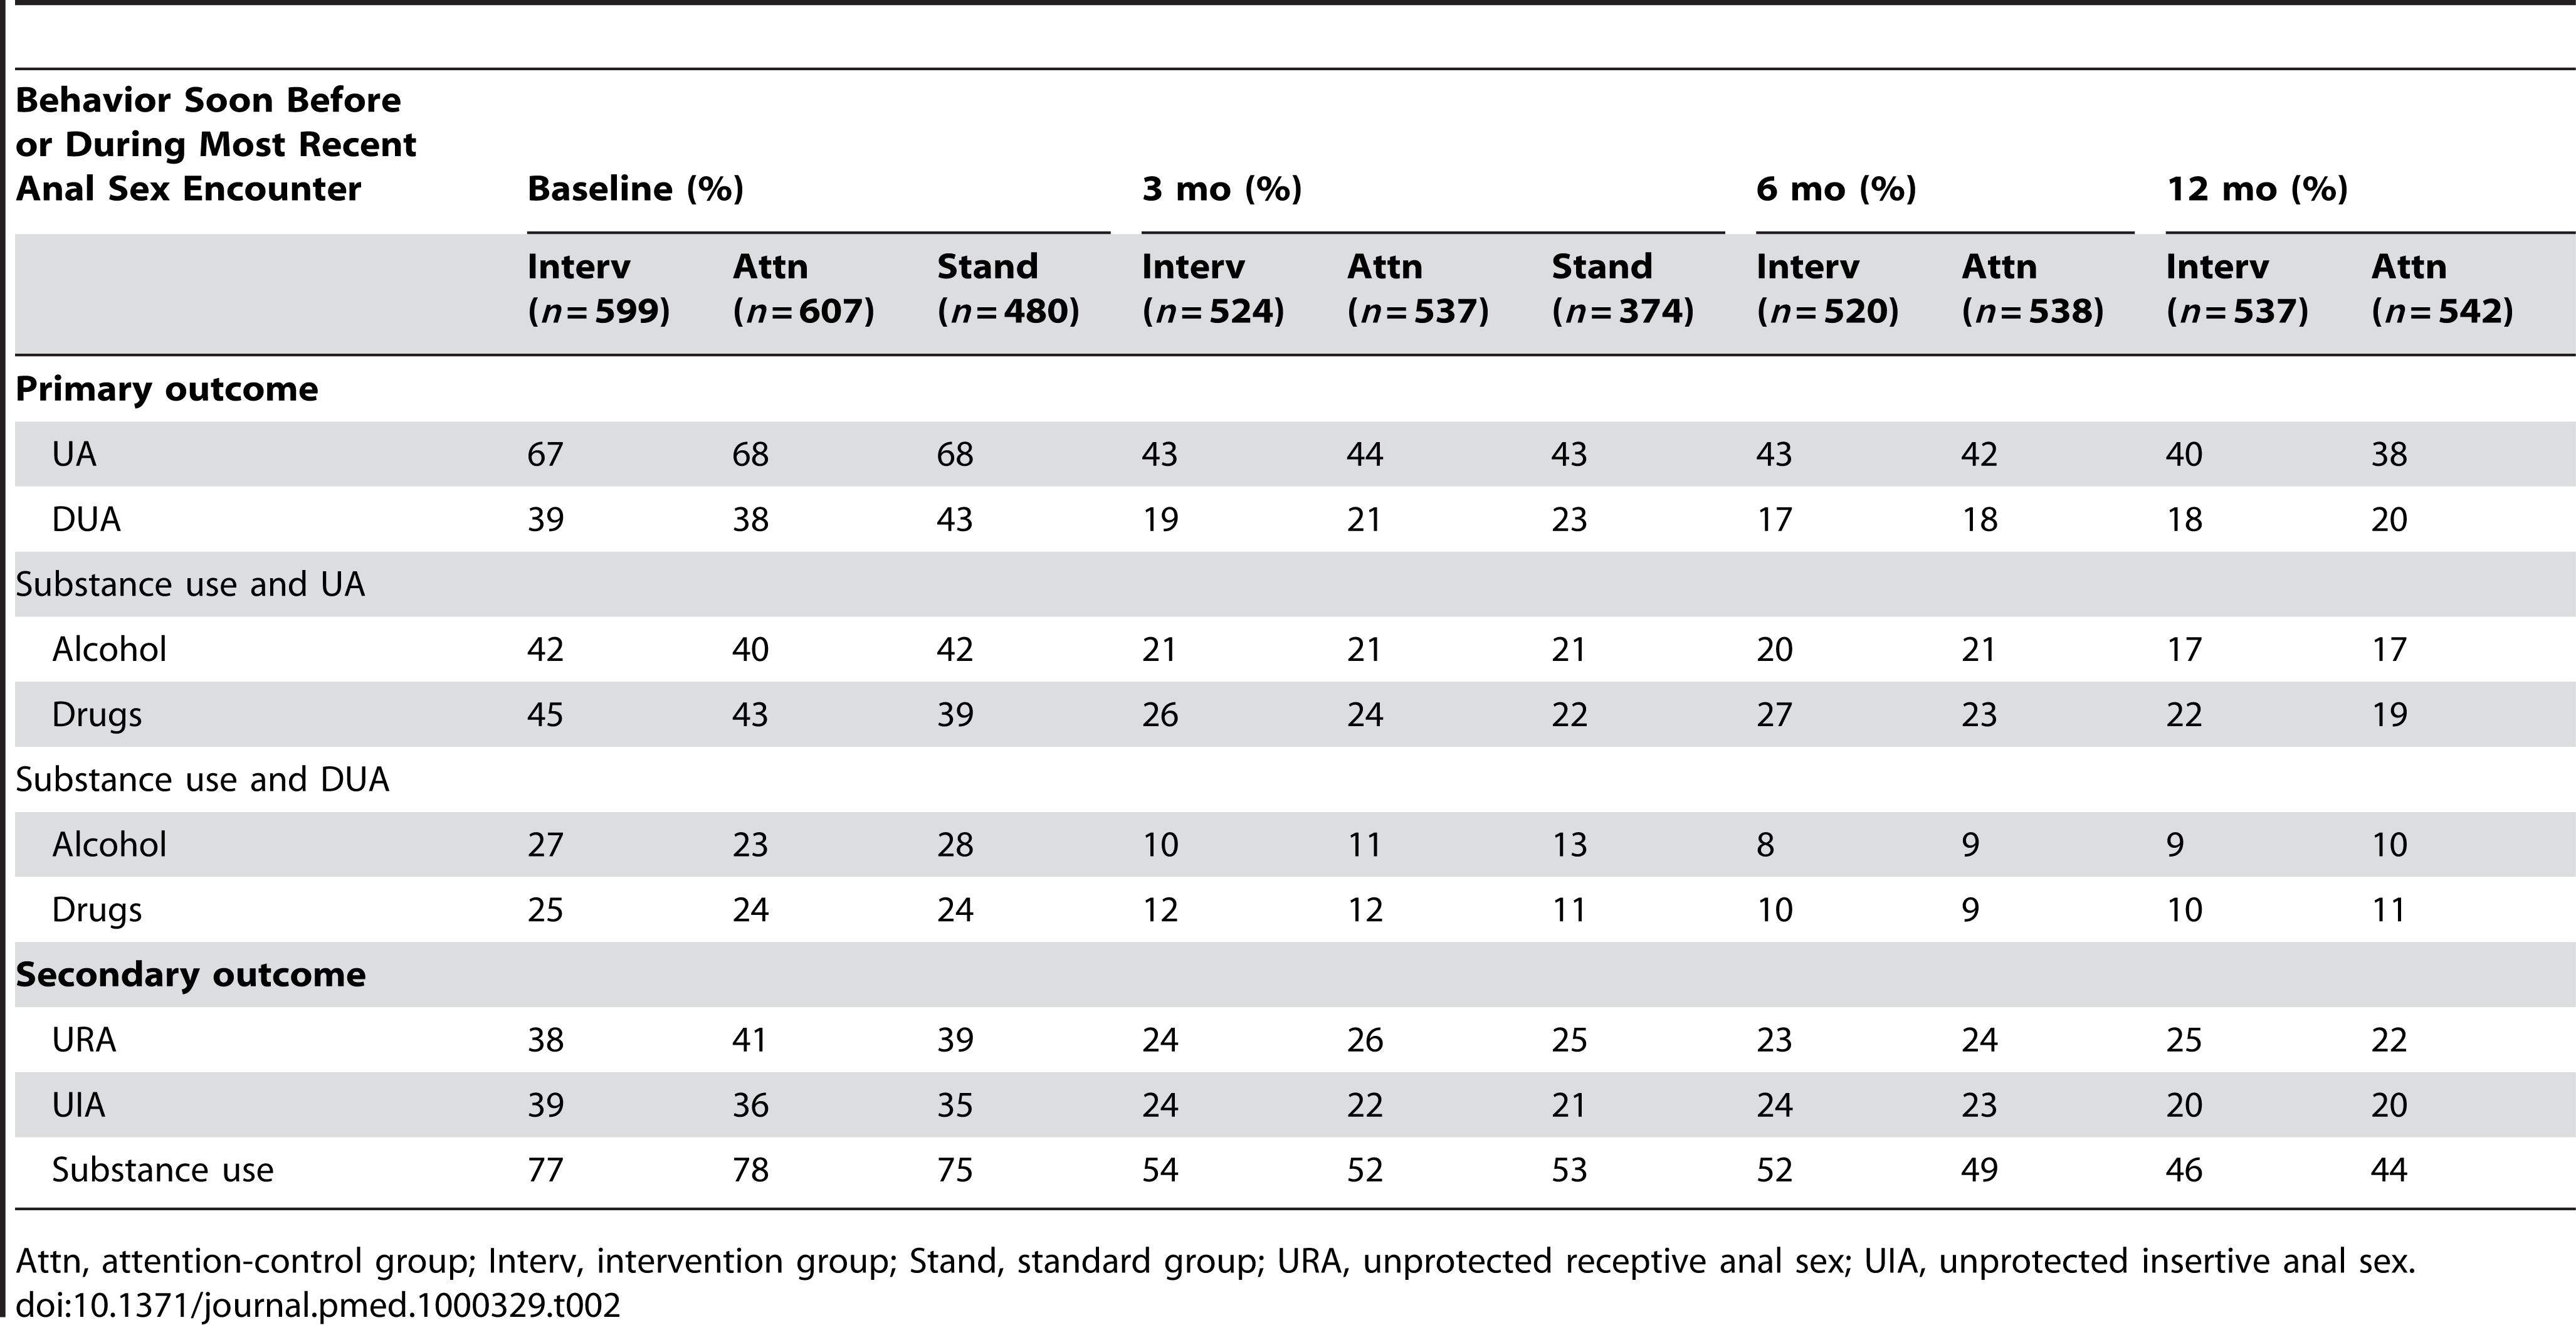 Project MIX primary and secondary outcome behaviors, by group at assessment wave, 2004–2008.